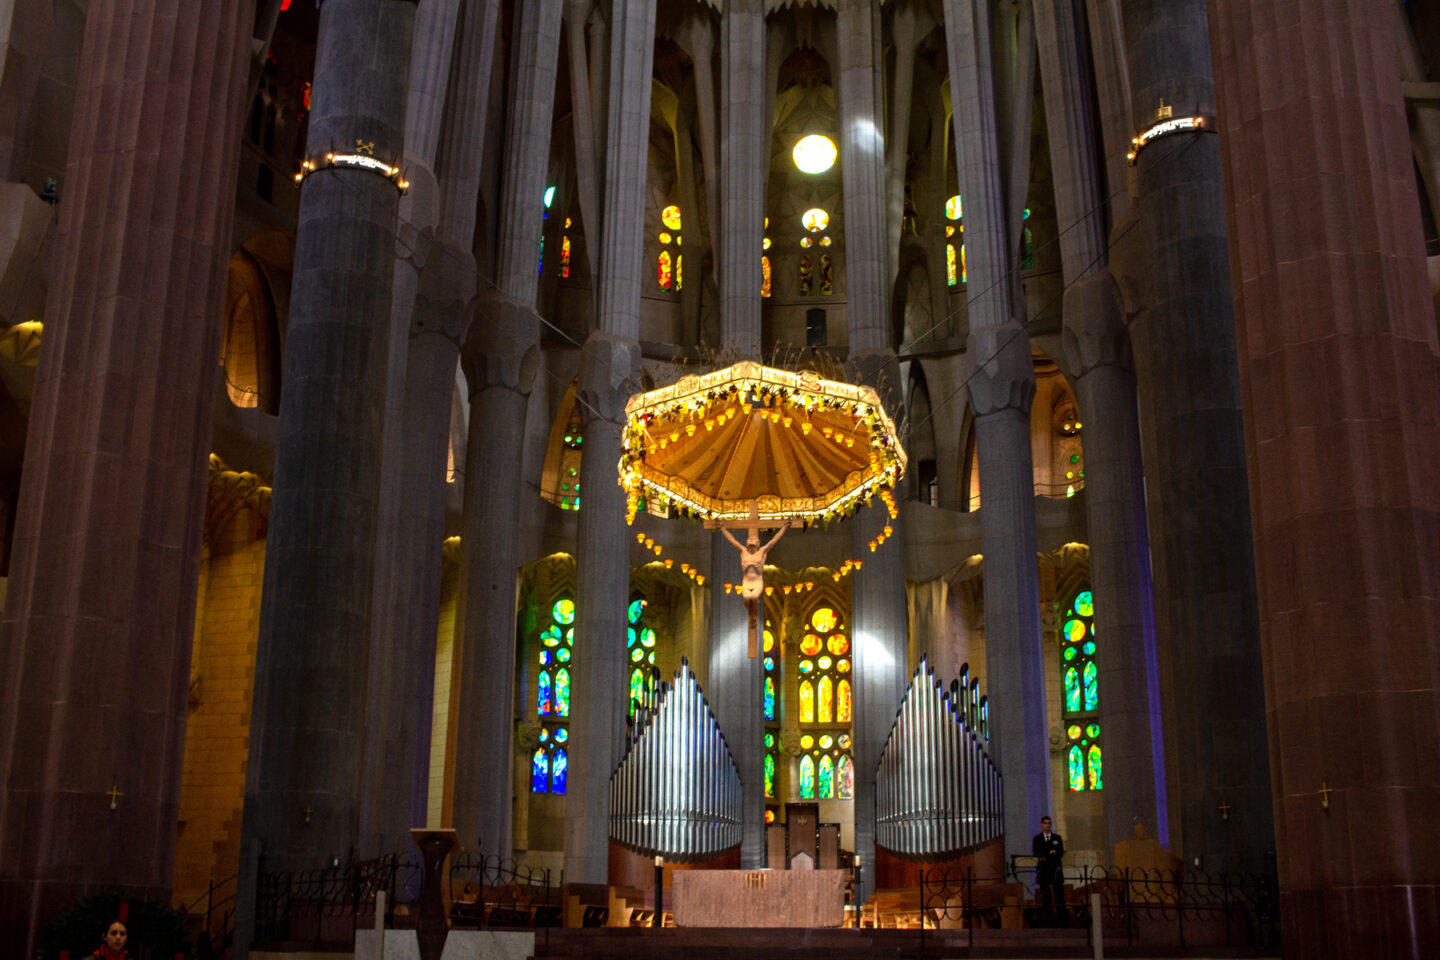 Inside Sagrada Familia at front with Christ statue.